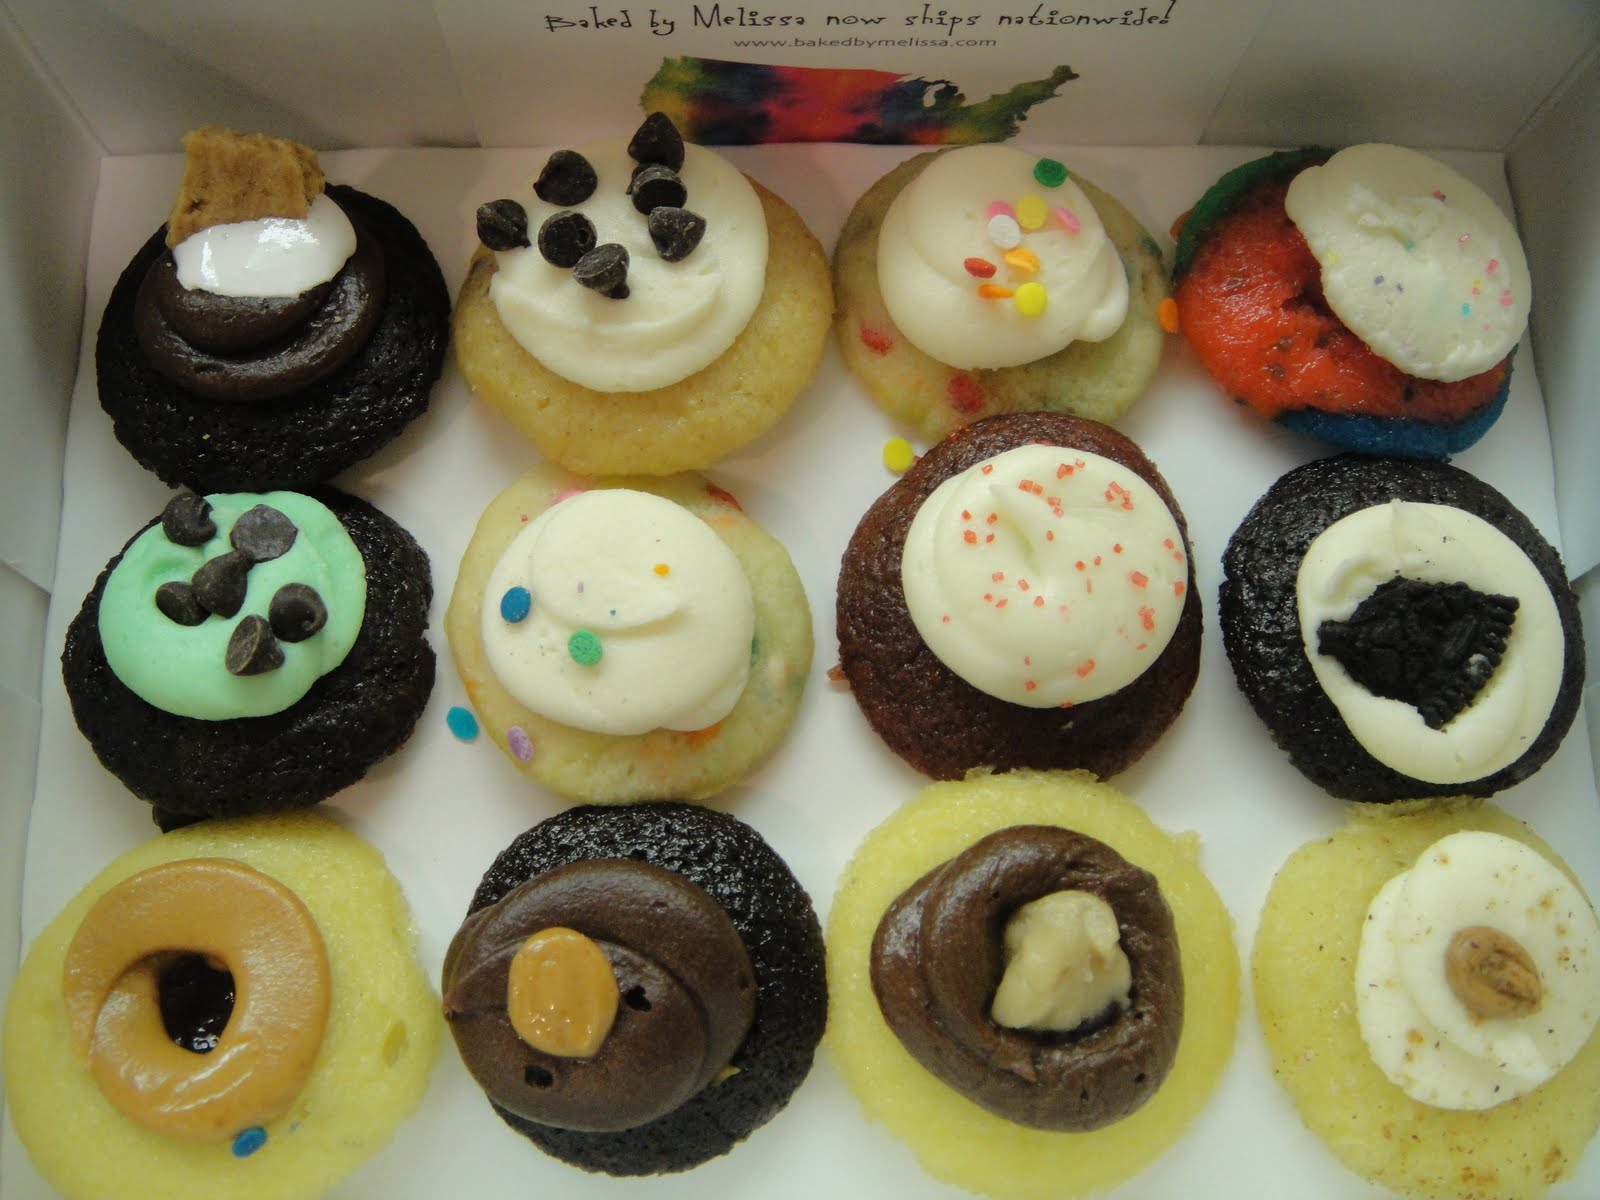 FOODYHOLIC'S Choice: BAKED BY MELISSA MINI CUPCAKES